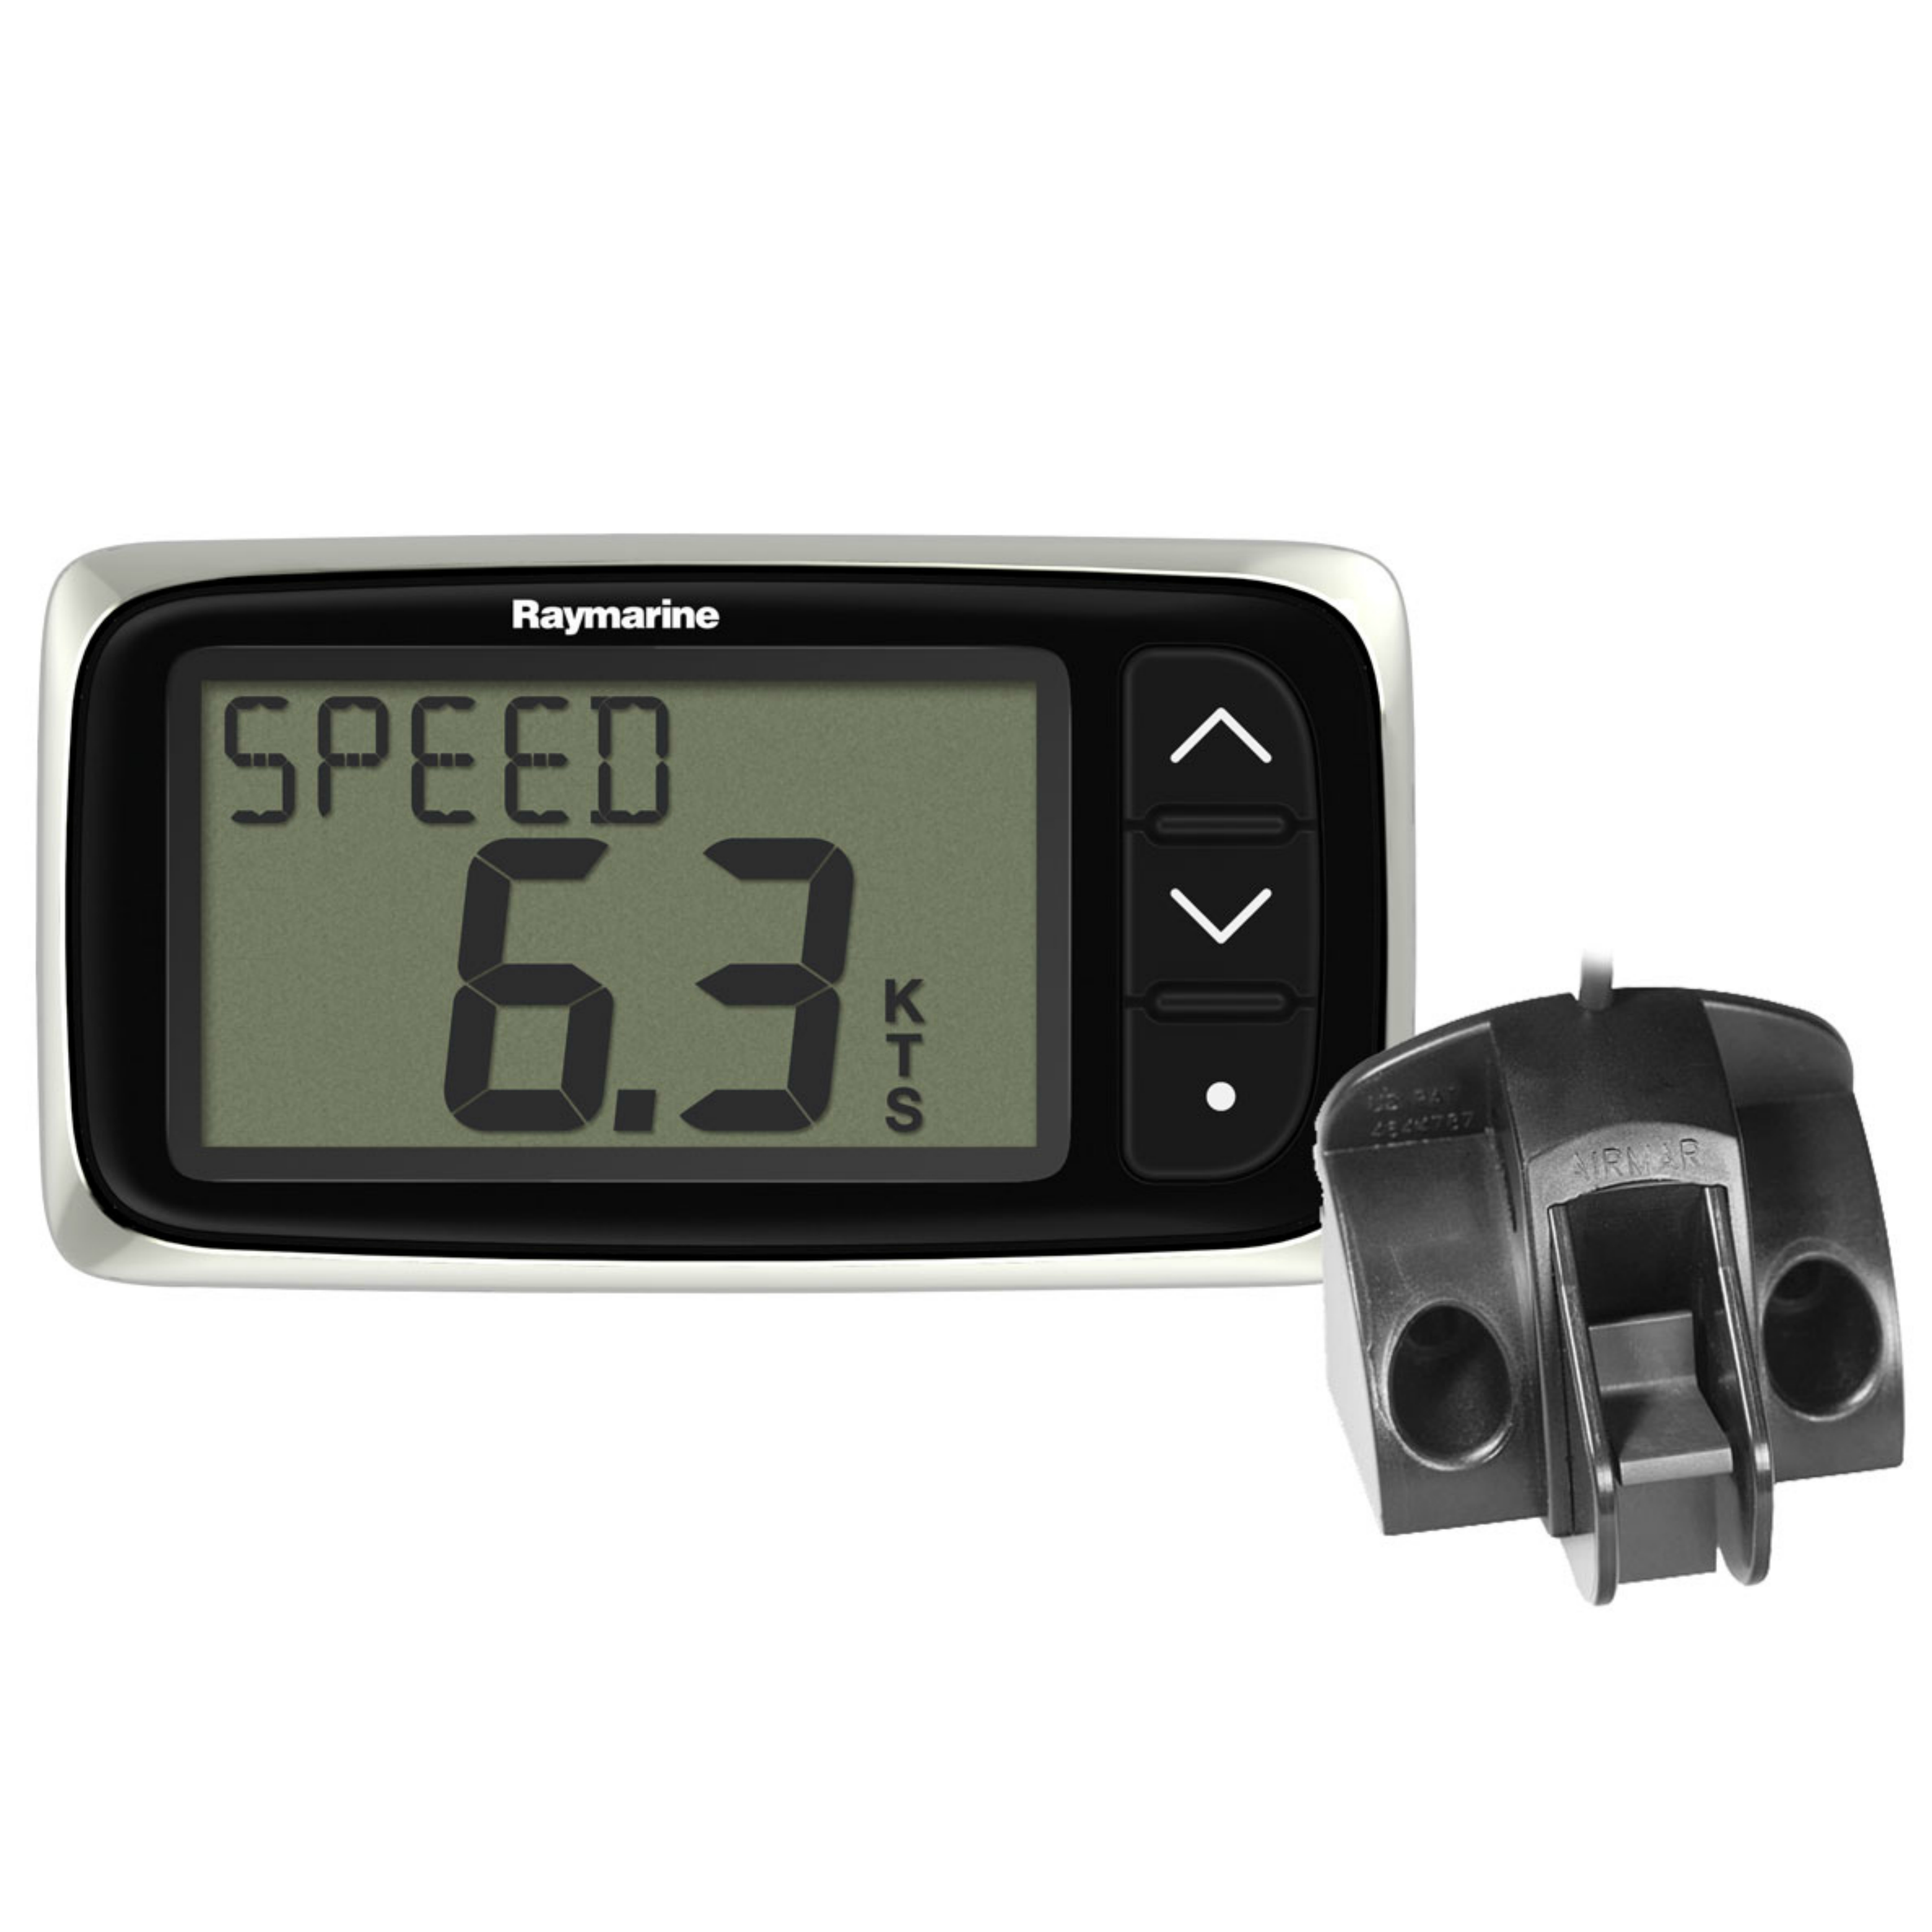 Raymarine E70141|i40 Speed Instrument Pack|ST69 Speed/Temp Transom Mount|For Boat & RIBs